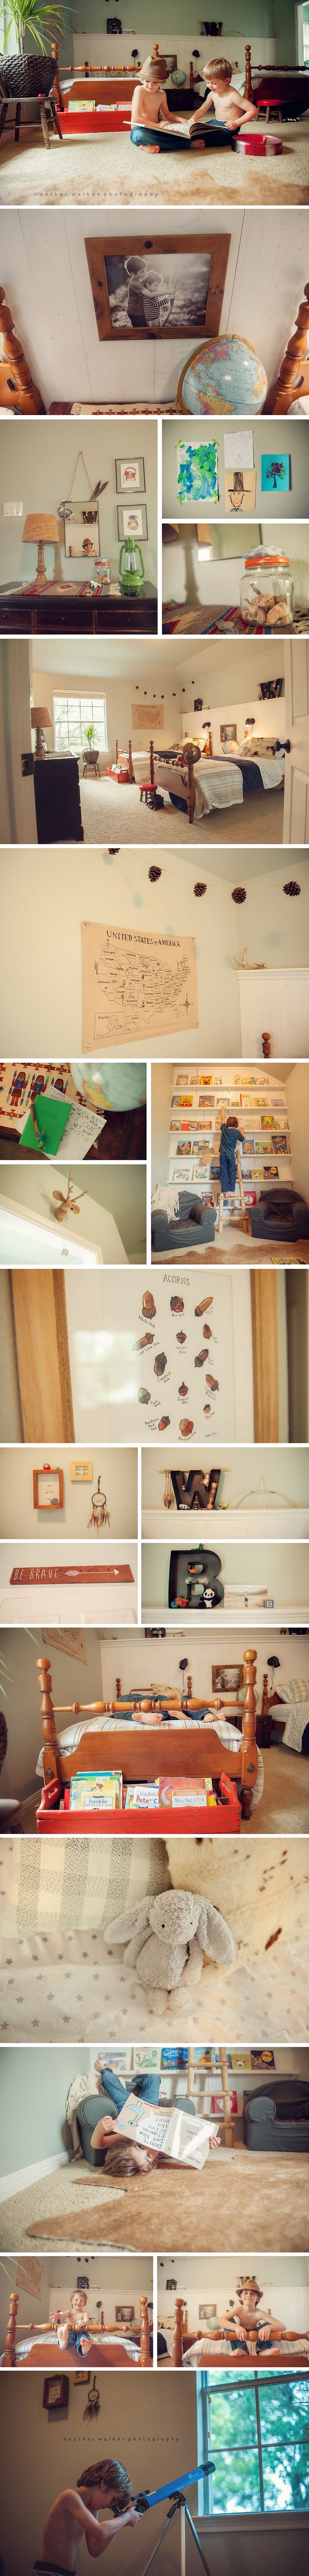 Boys Room Makeover. This adventure themed bedroom would be so fun to create for ...